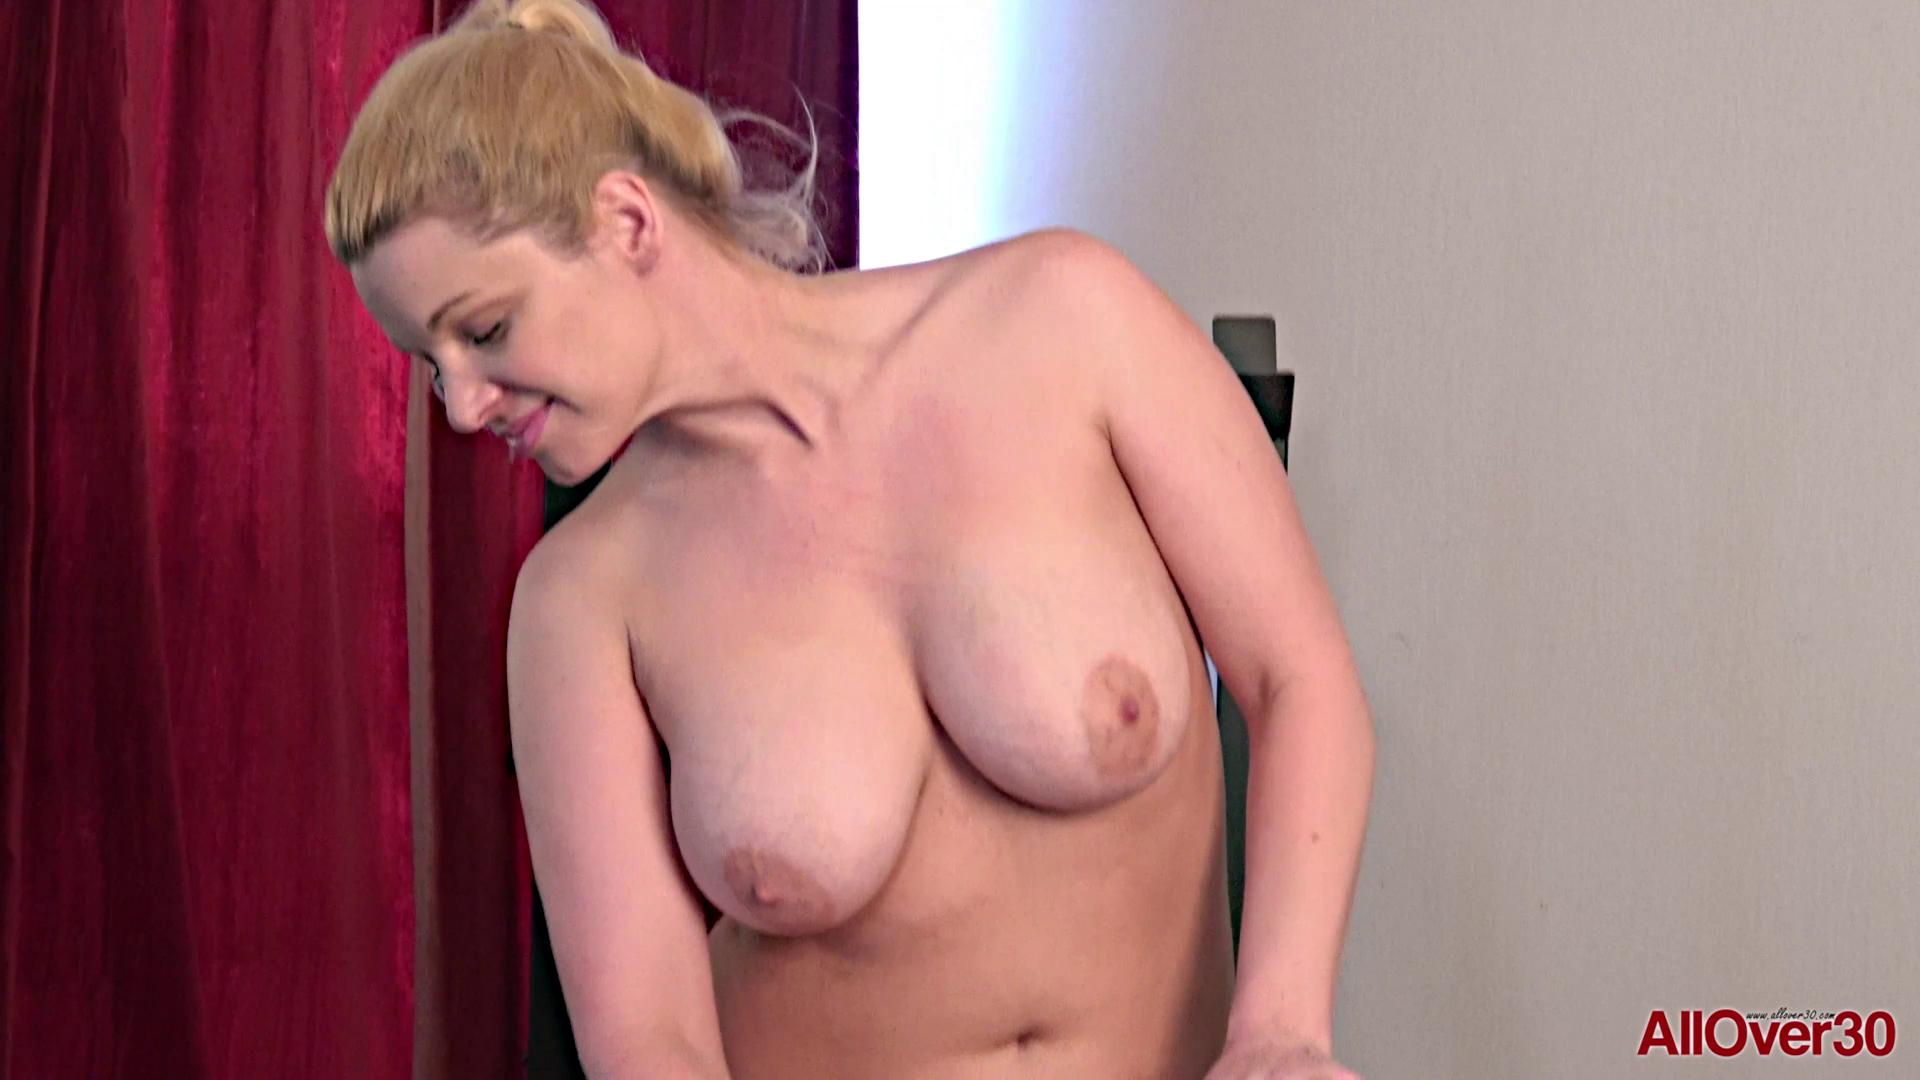 April Key Mature Pleasure